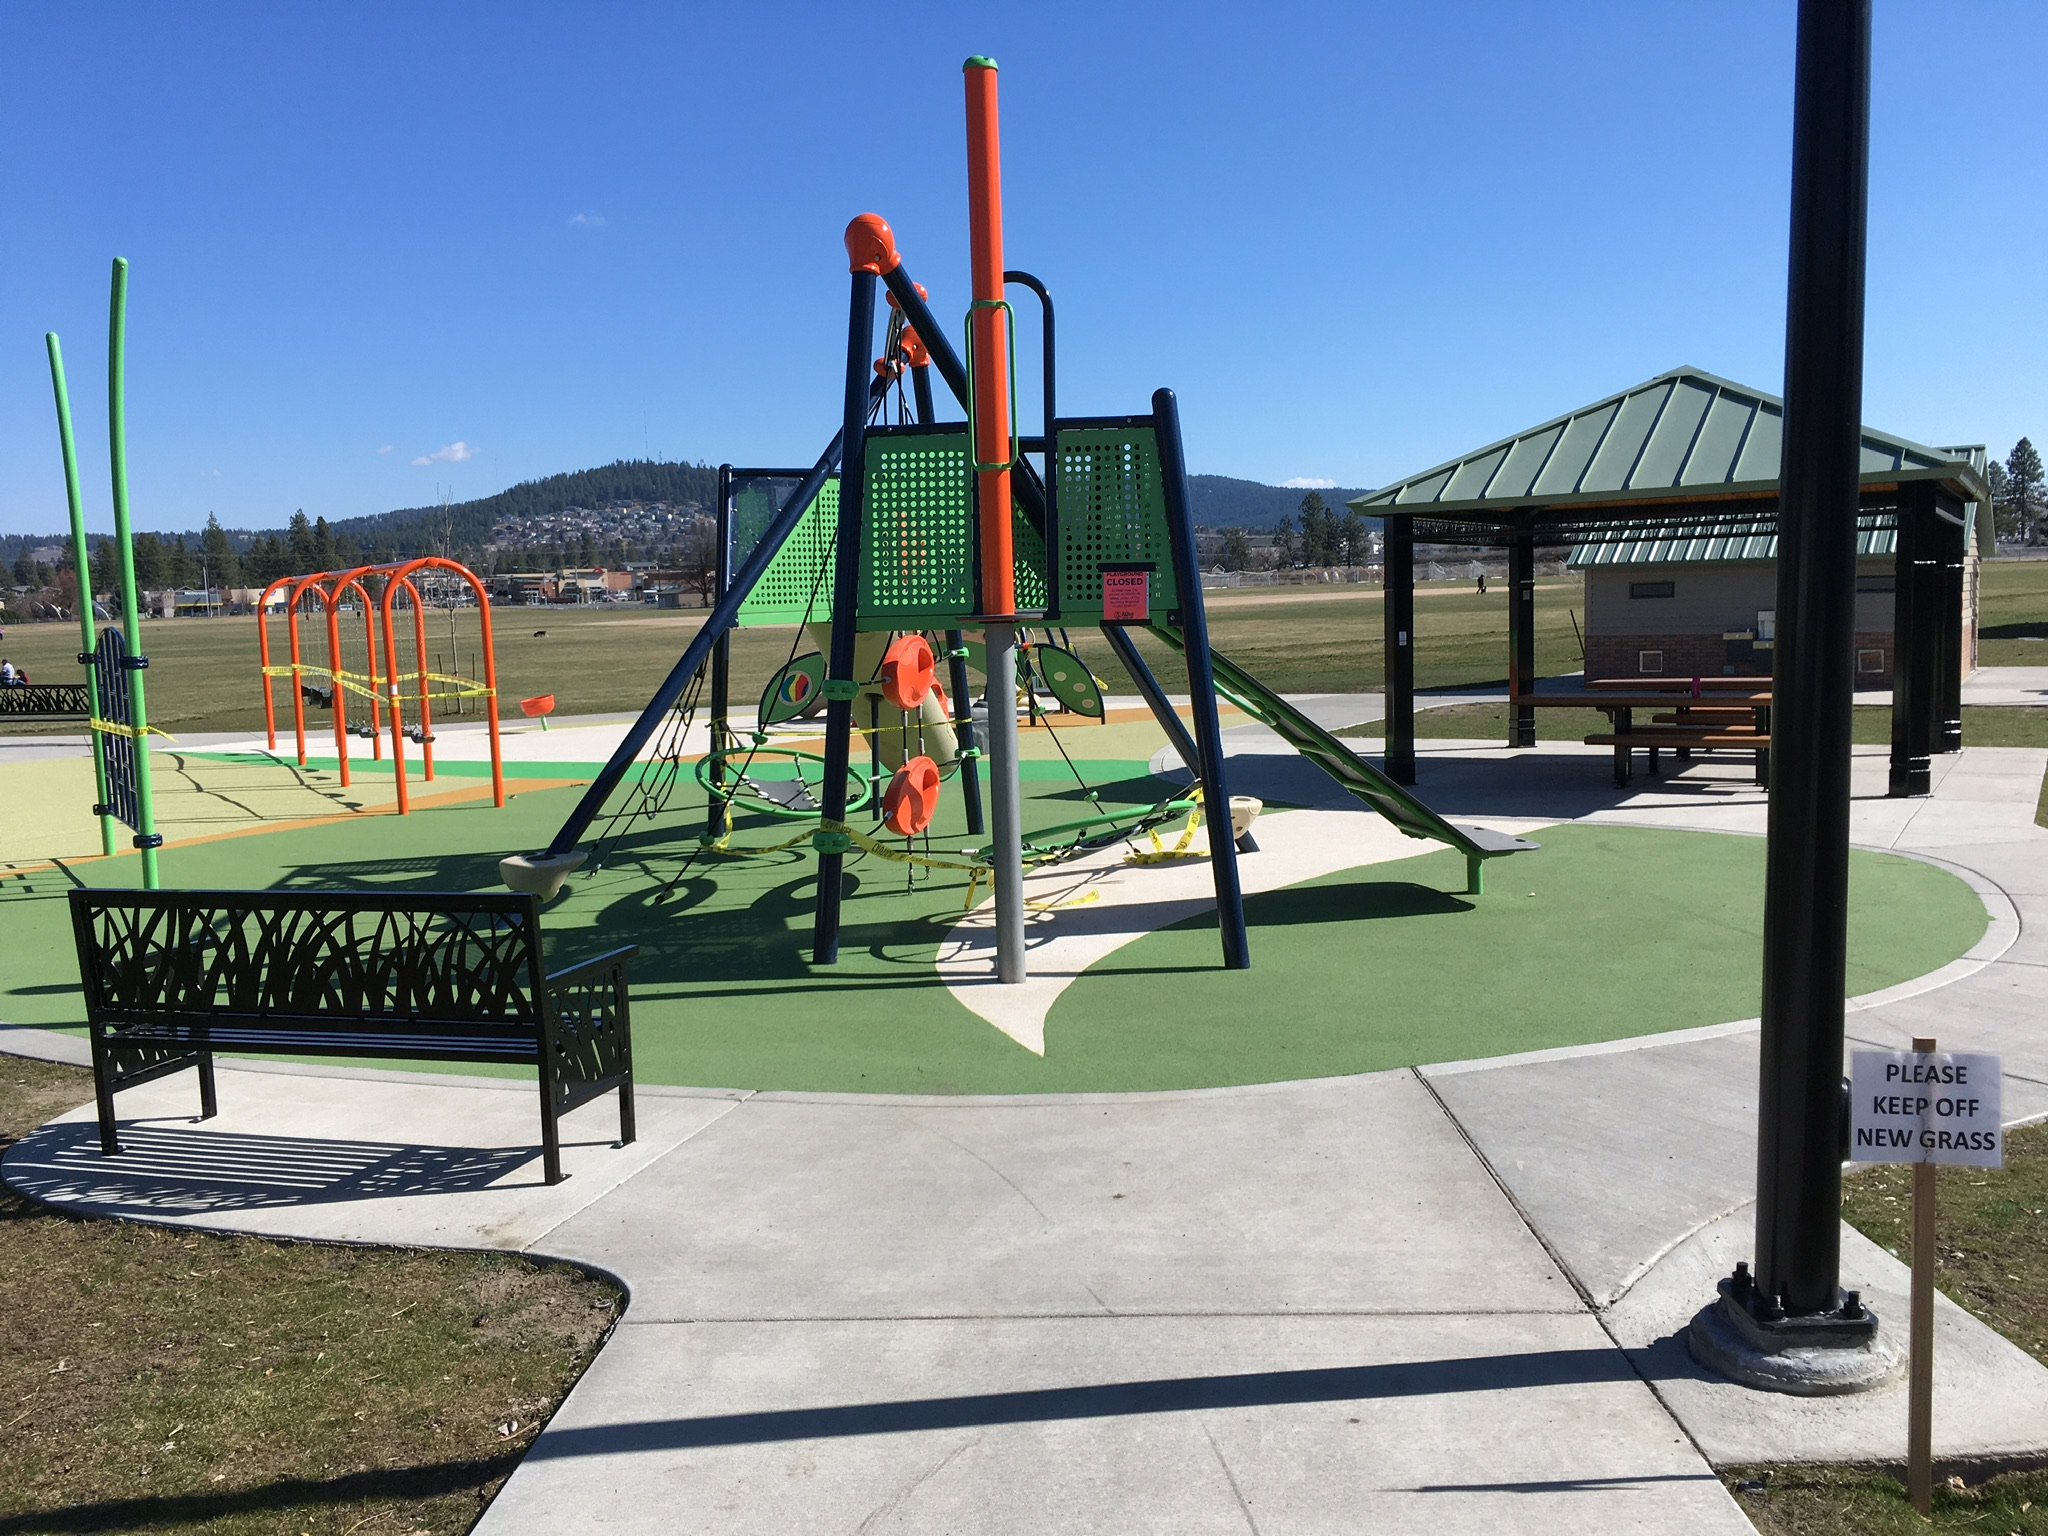 Another play structure